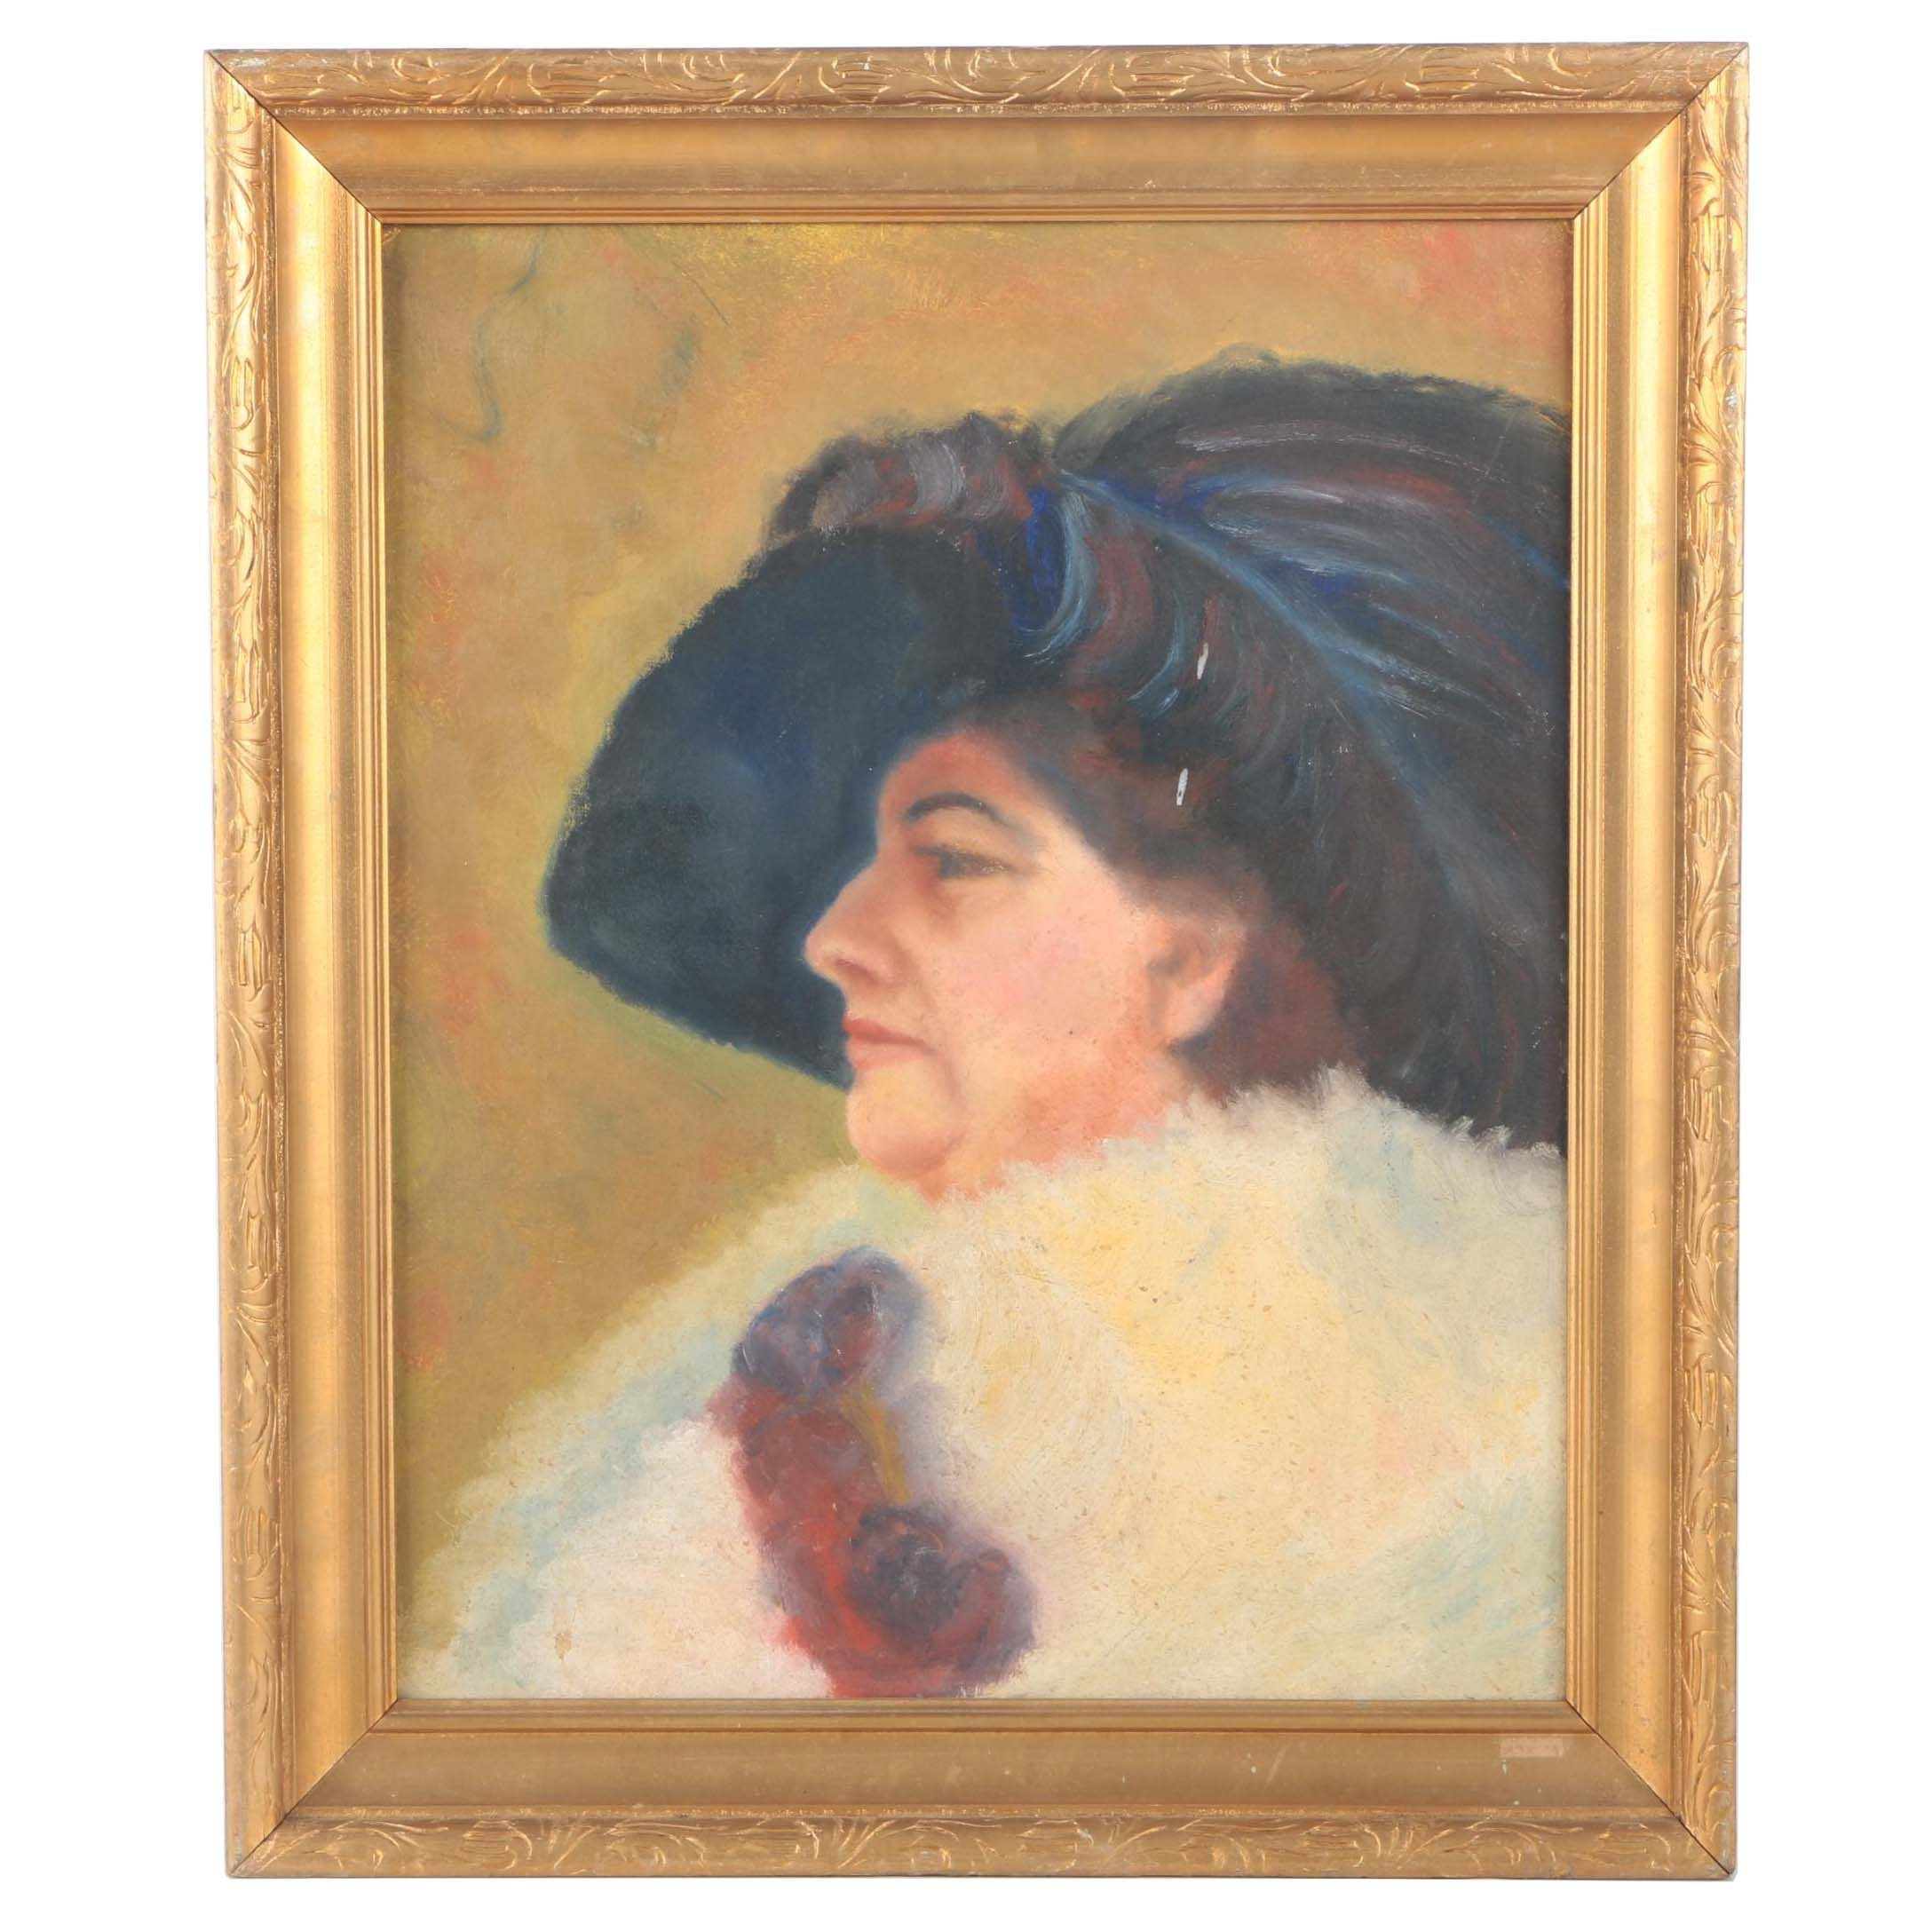 Oil on Canvas Board Portrait of Woman in a Feathered Hat